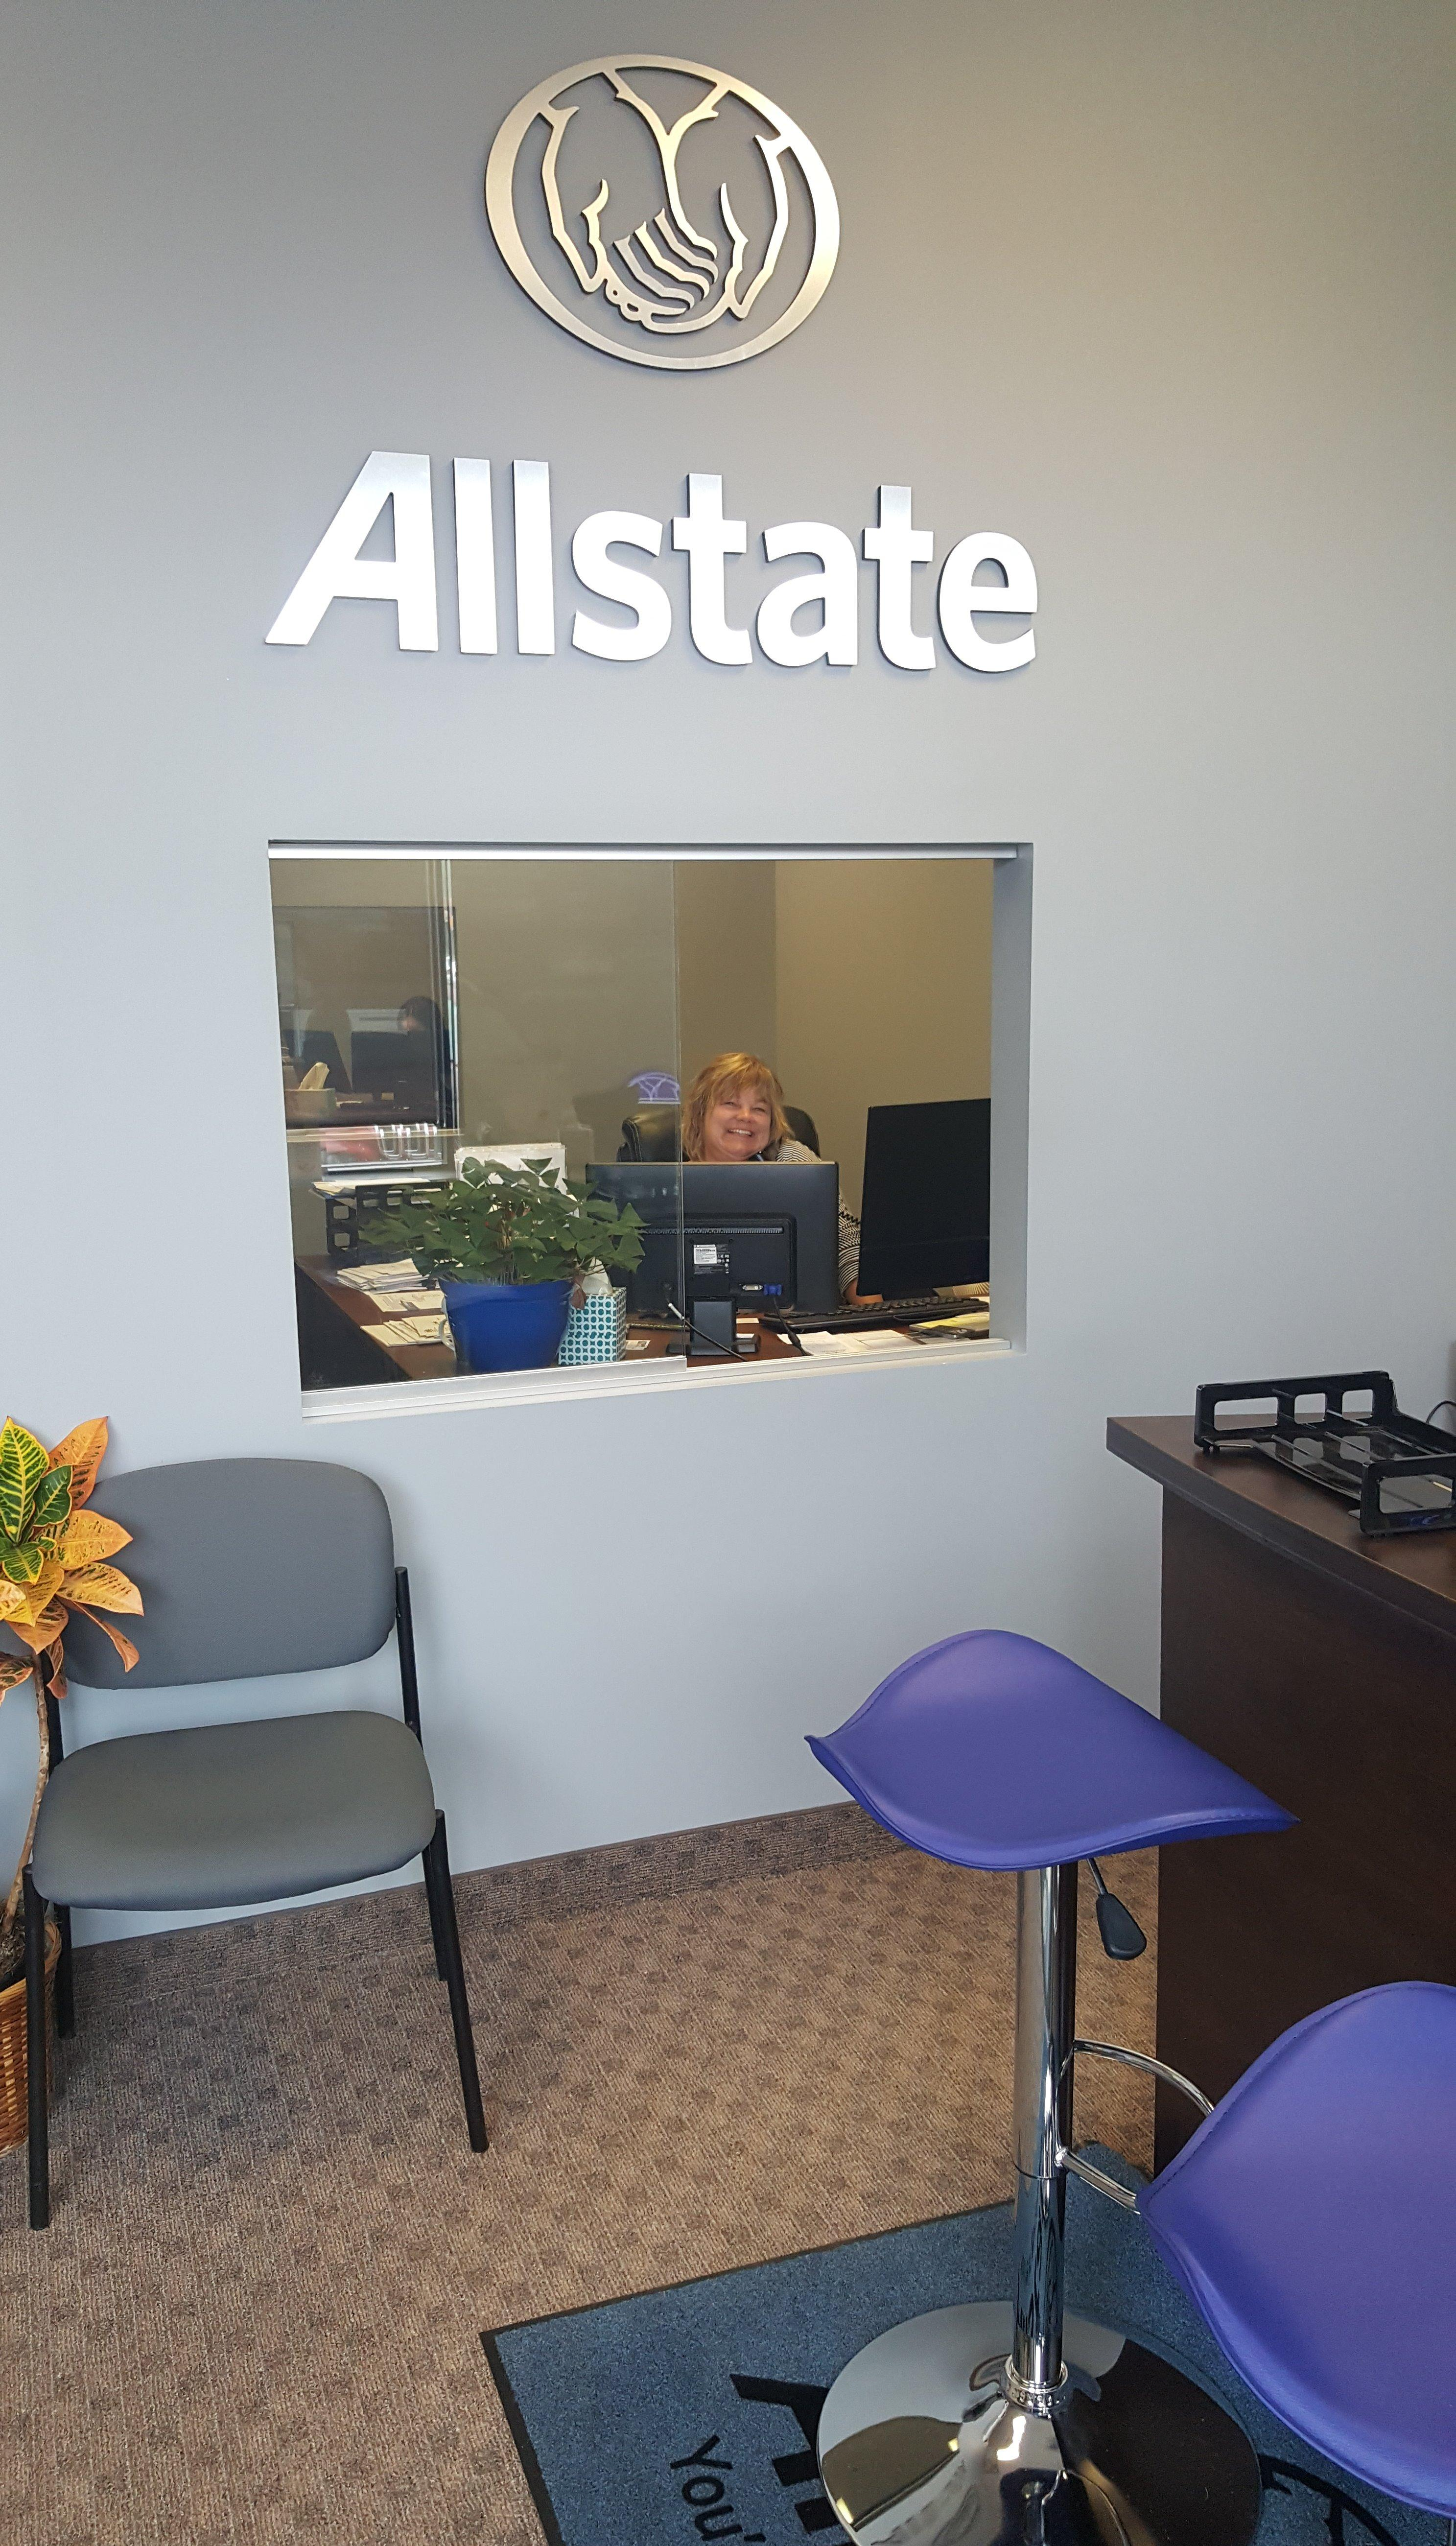 Dave Curtis: Allstate Insurance image 3